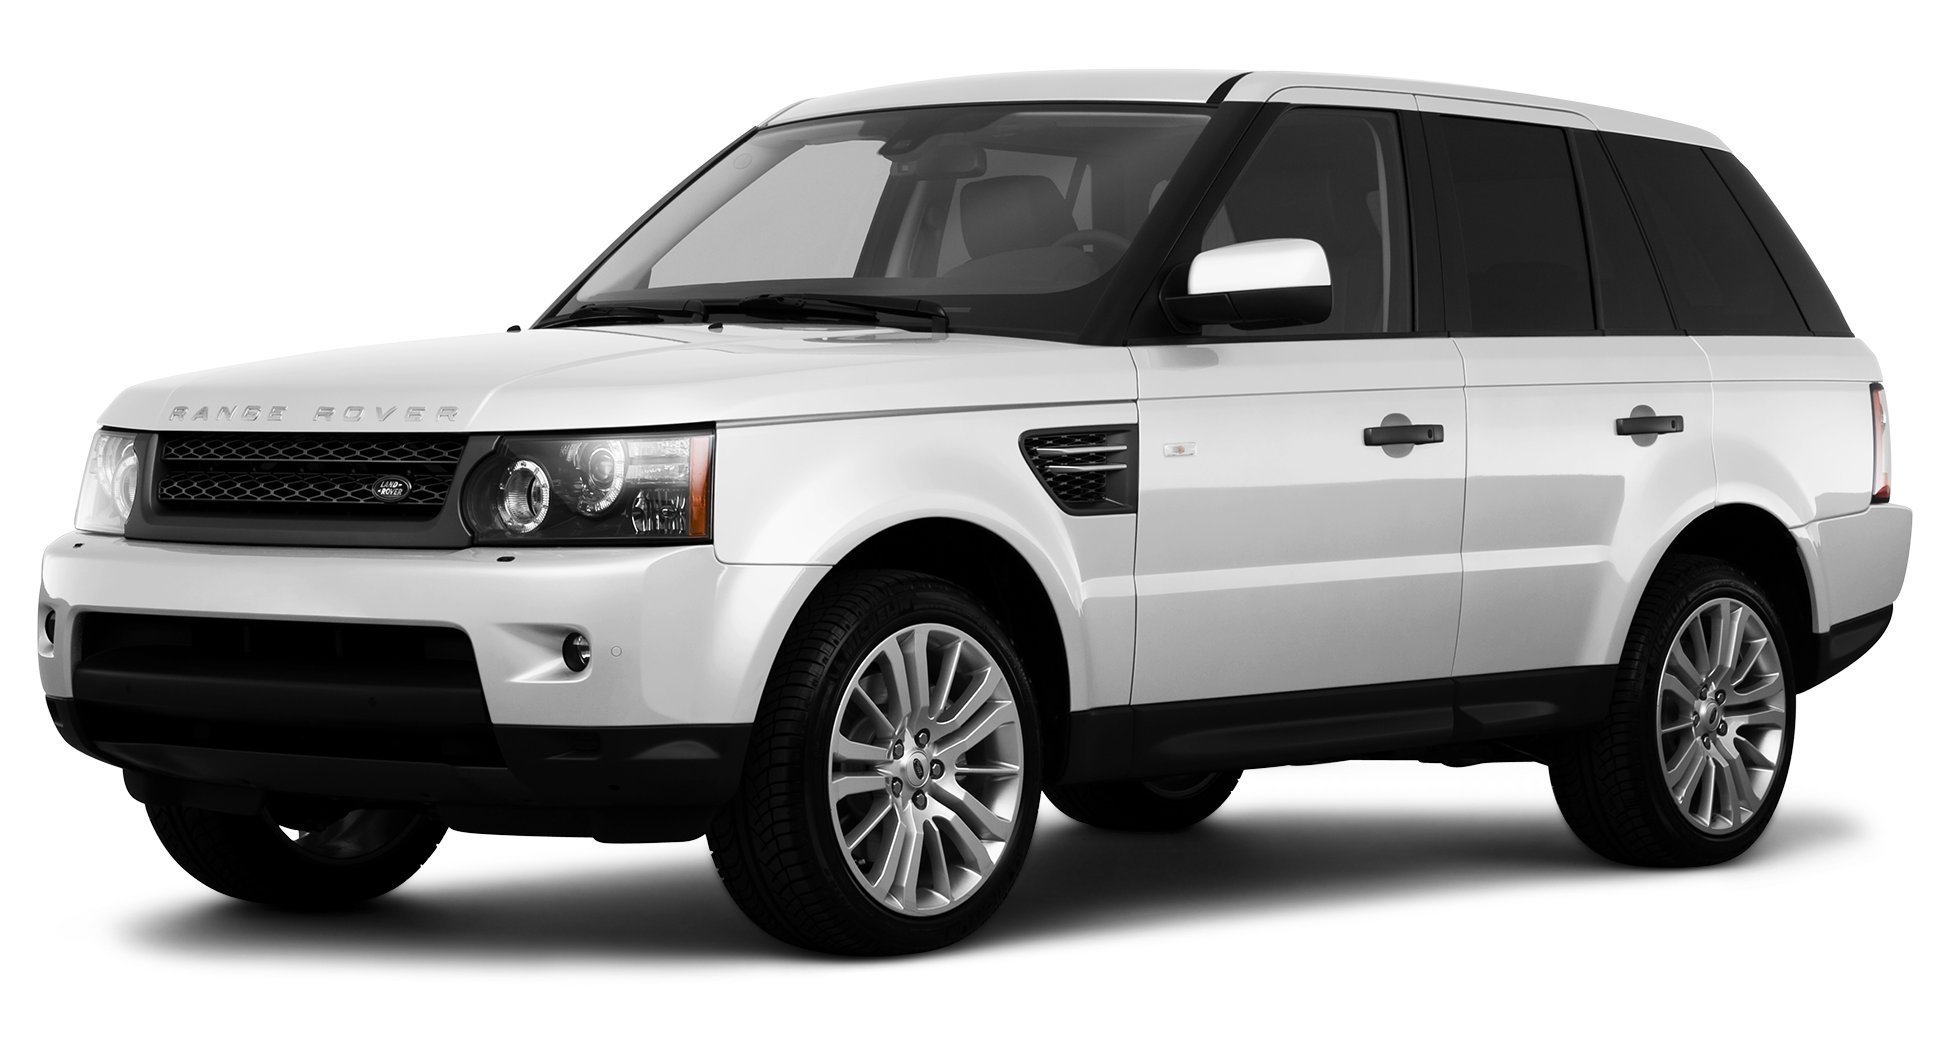 2010 land rover range rover sport reviews images and specs vehicles. Black Bedroom Furniture Sets. Home Design Ideas